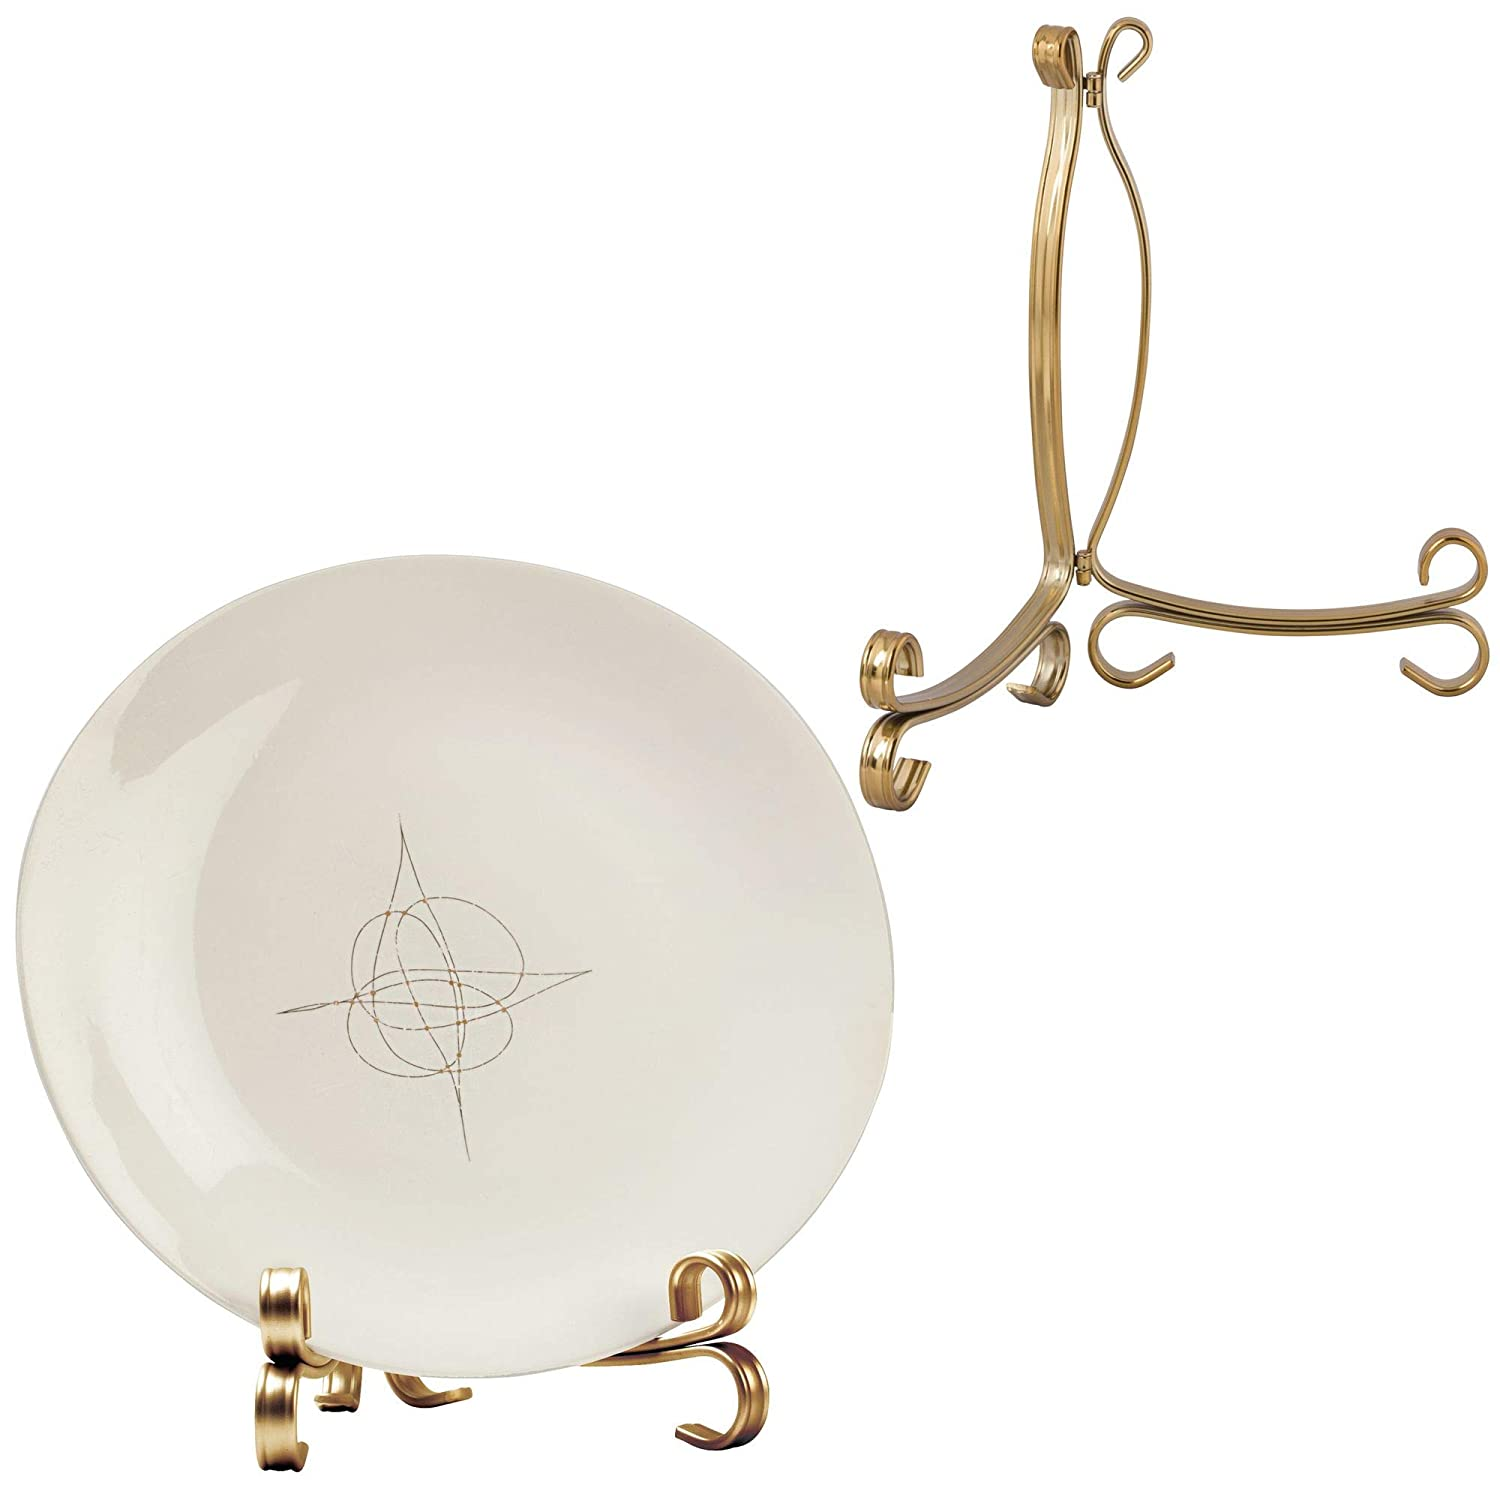 mDesign Easel Holders Cookbooks, China Plates, Diplomas - Pack of 2, Large, Aged Brass MetroDecor 3887MDHS